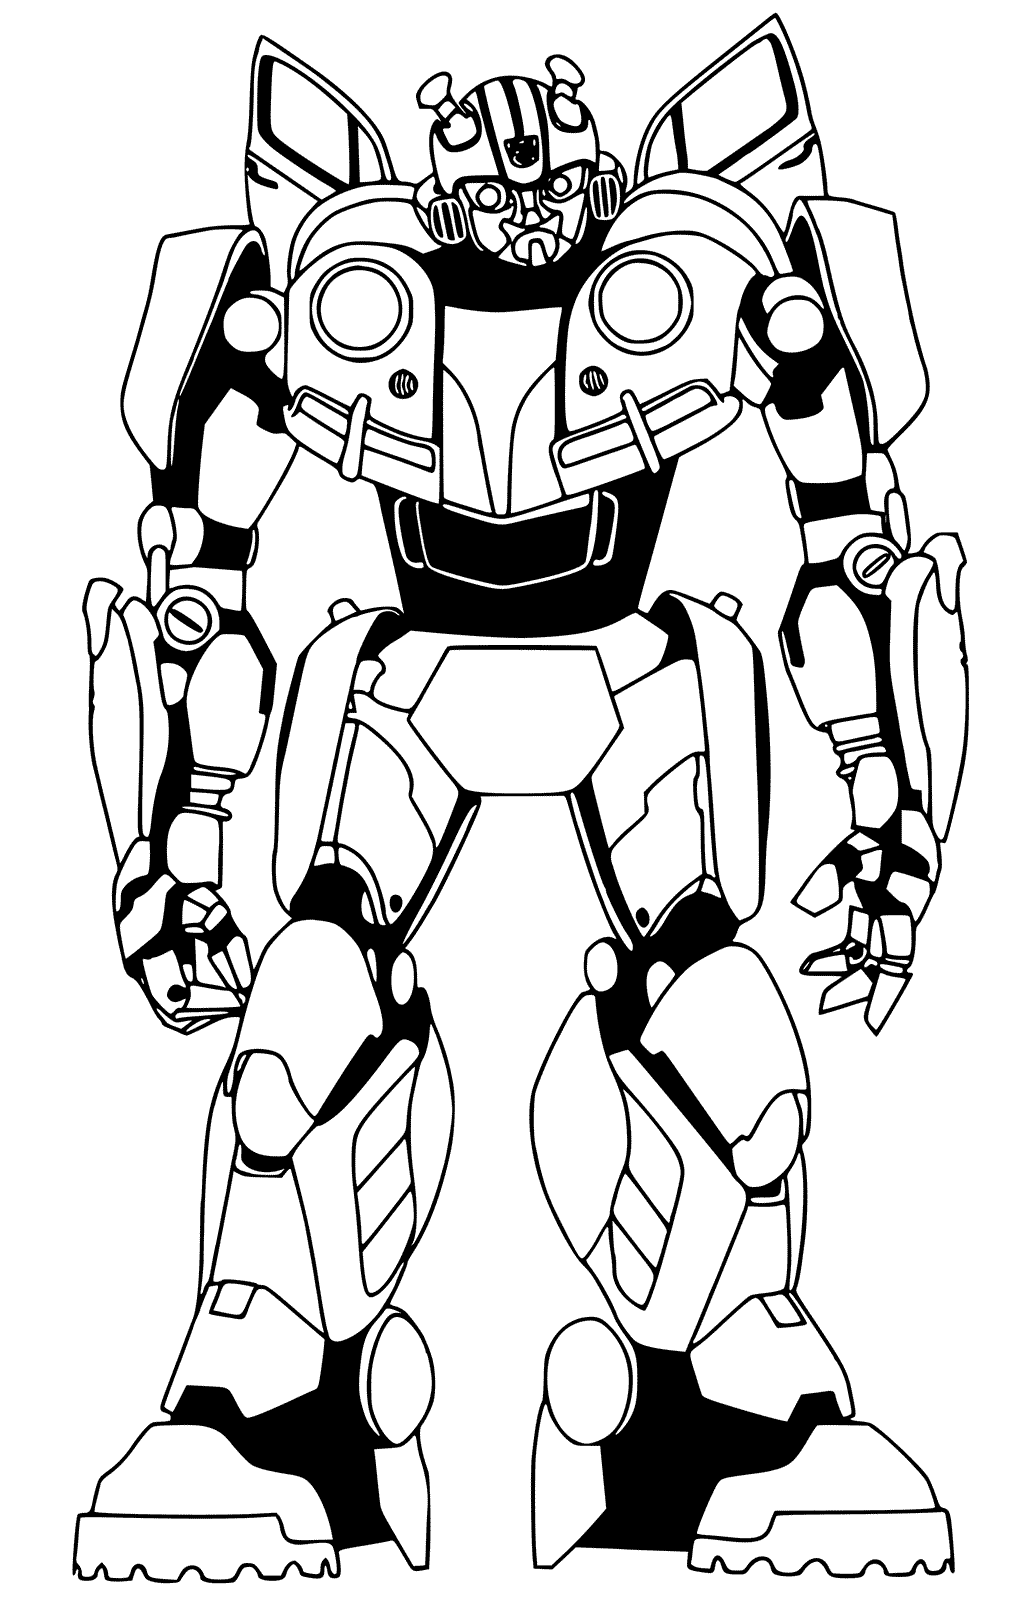 bumblebee transformer coloring pictures bumblebee transformer coloring page educative printable transformer bumblebee pictures coloring